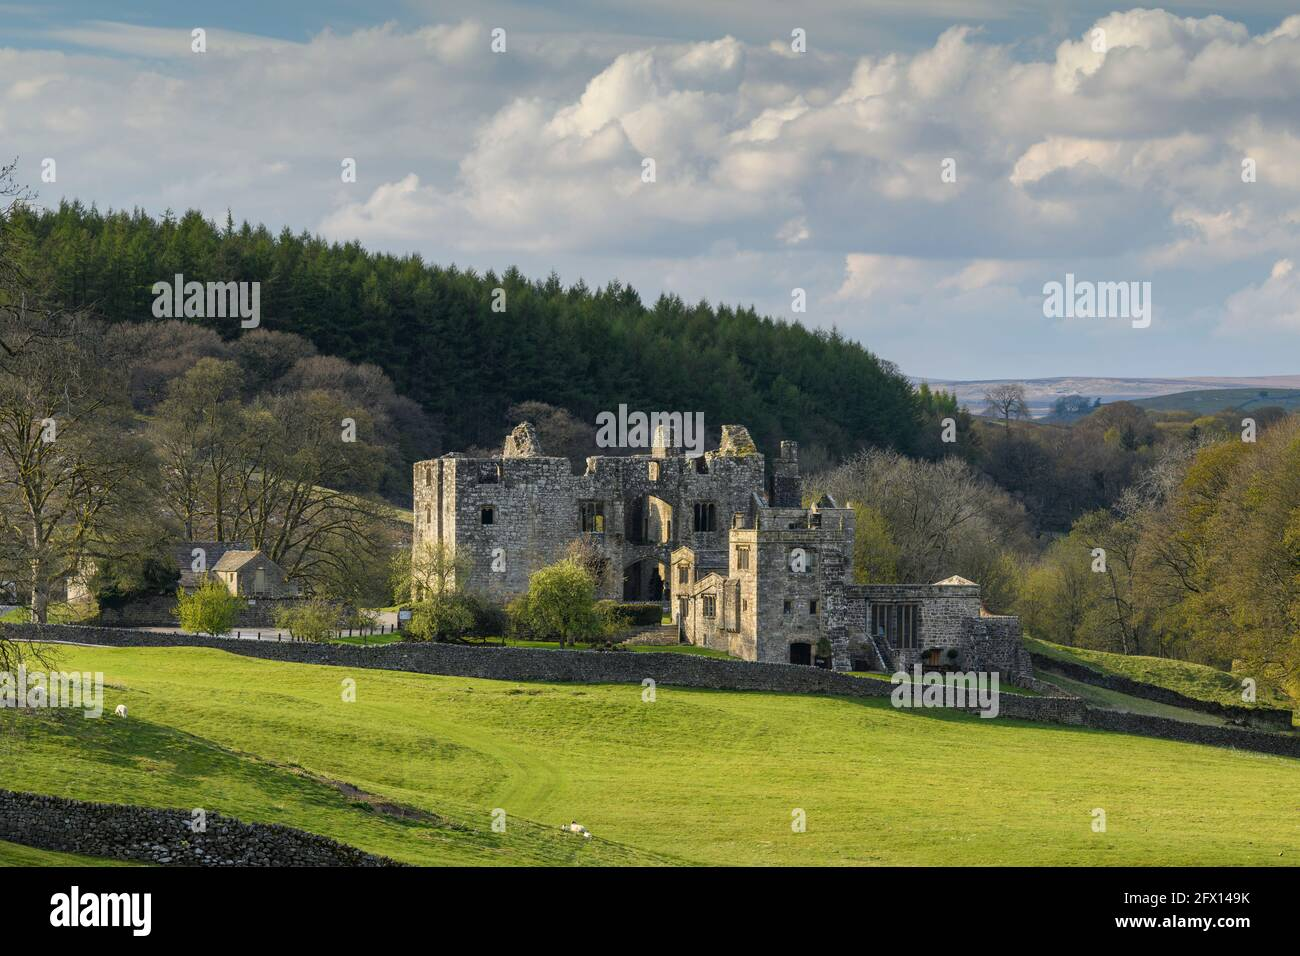 Barden Tower (historic ancient hunting lodge ruin in beautiful countryside setting) - scenic rural Bolton Abbey Estate, Yorkshire Dales, England, UK. Stock Photo